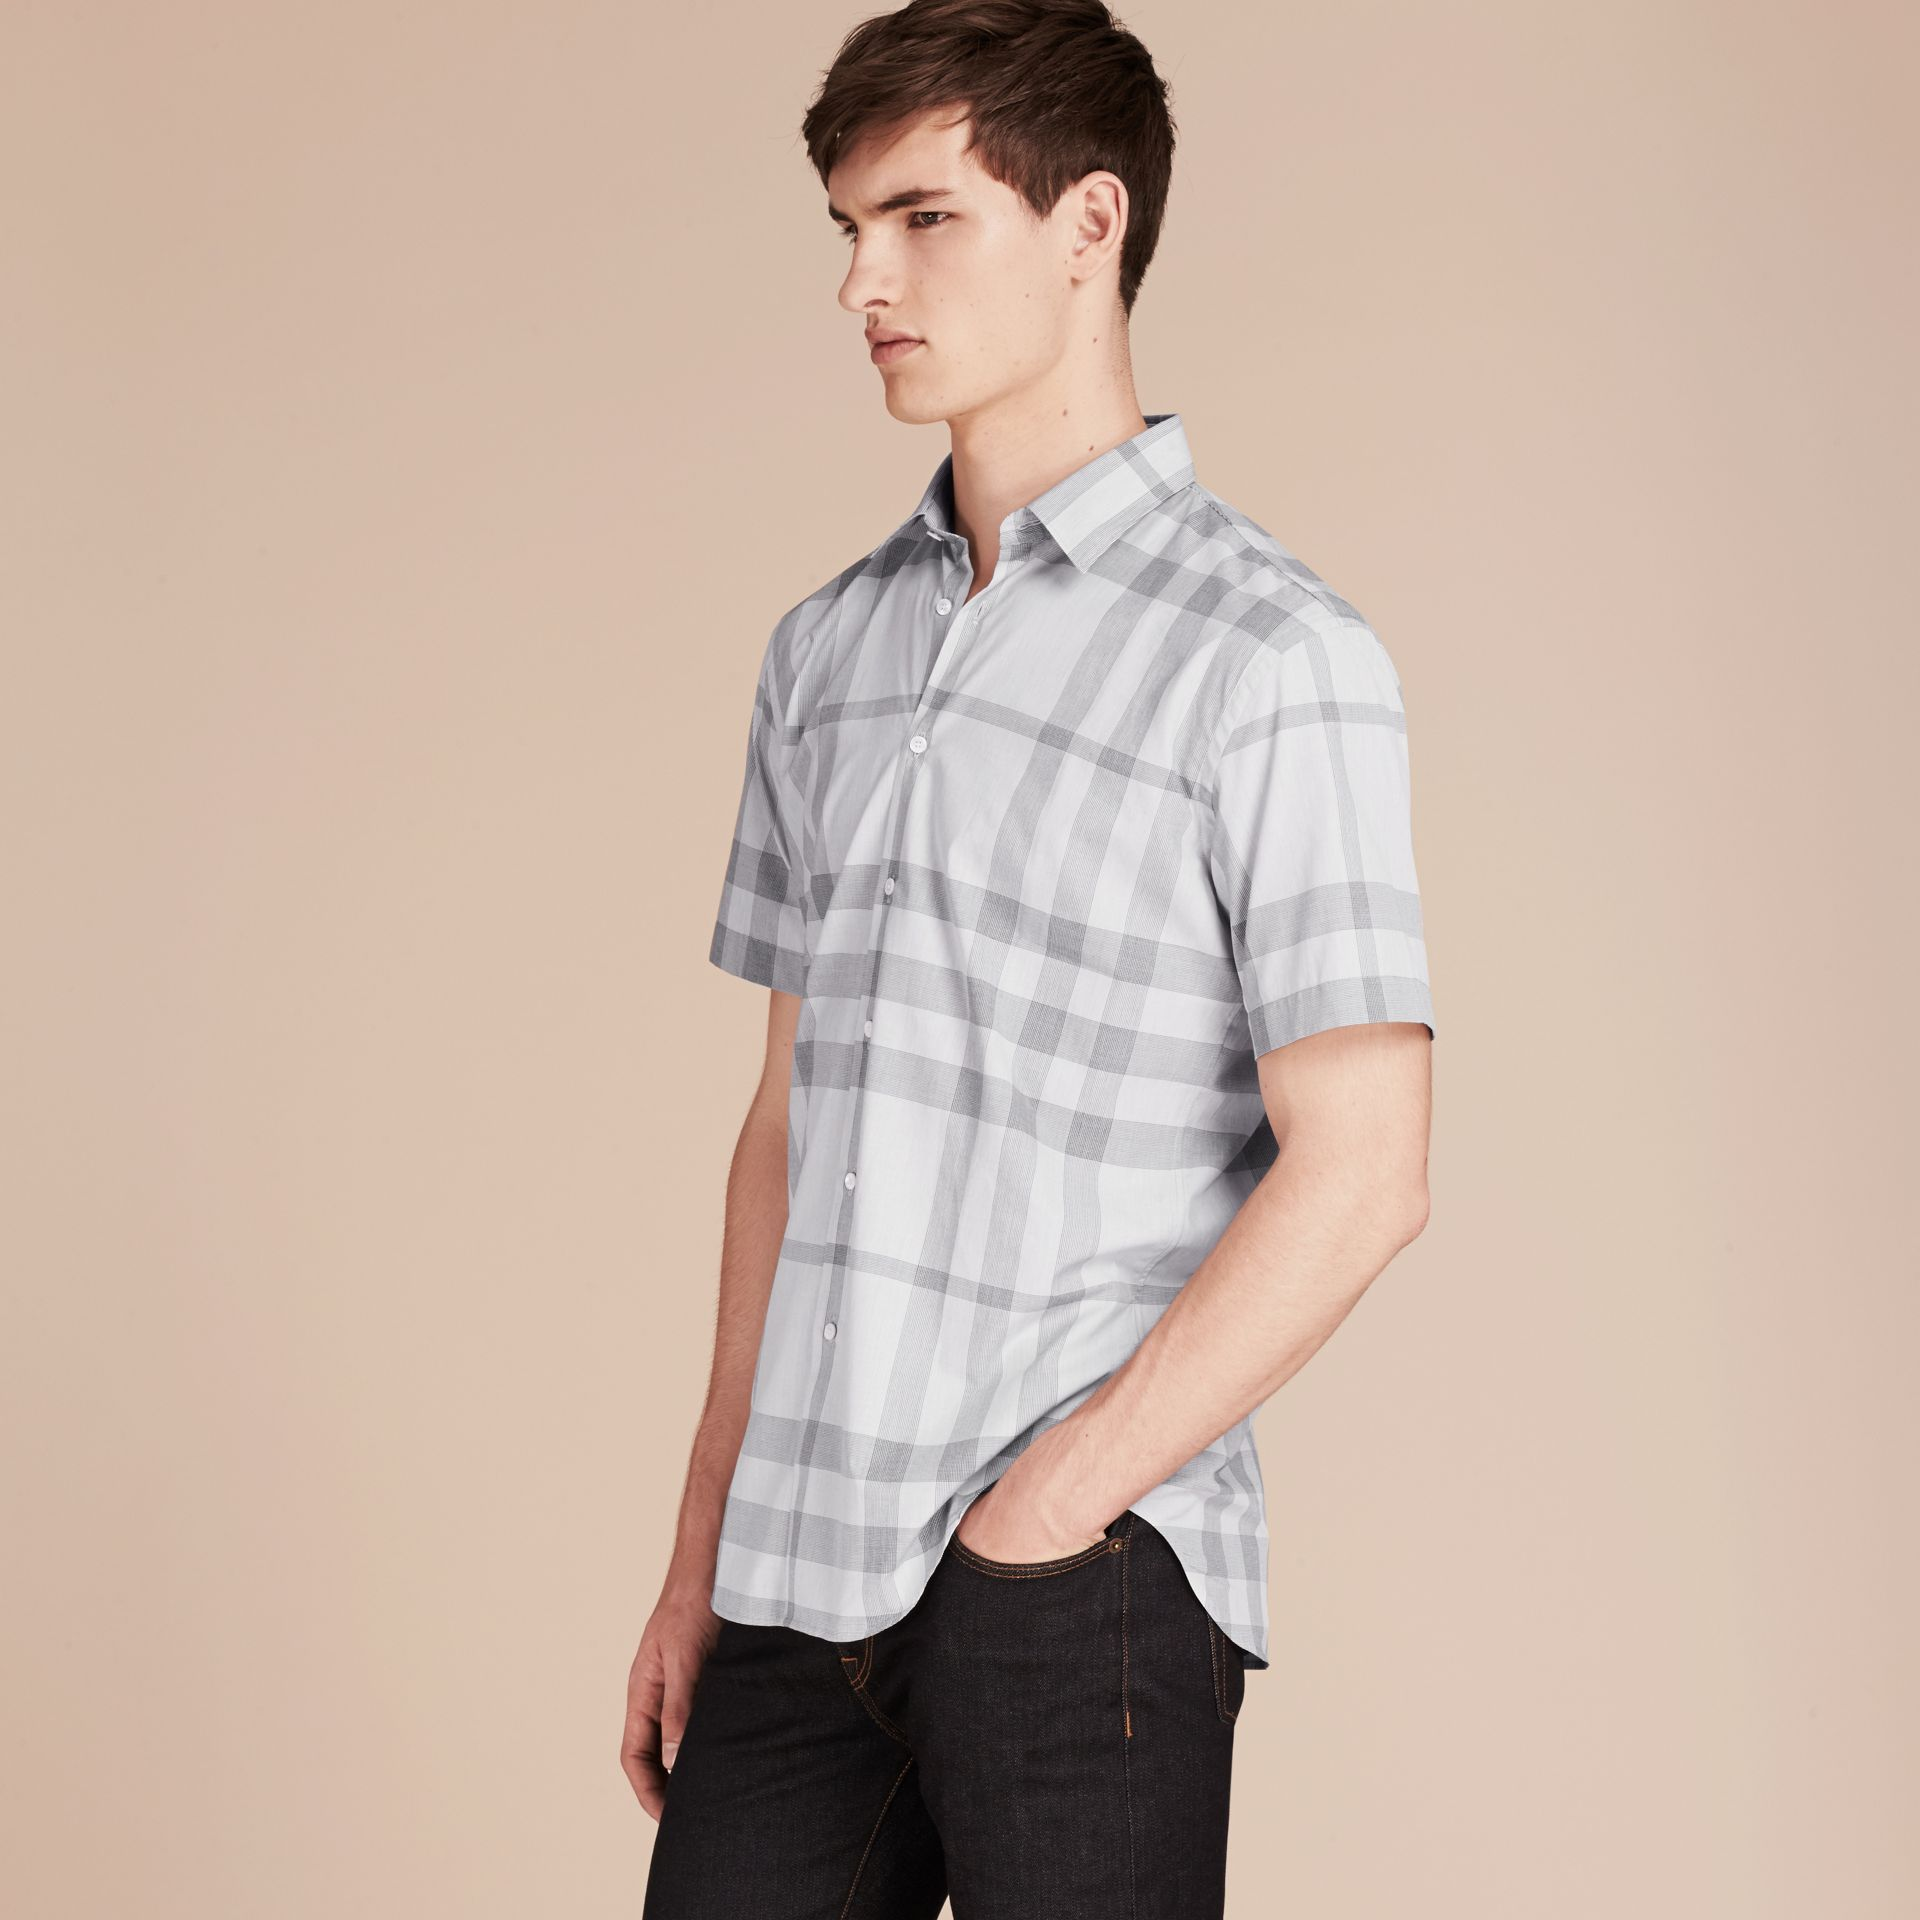 Pale grey Short-sleeved Check Cotton Shirt Pale Grey - gallery image 6